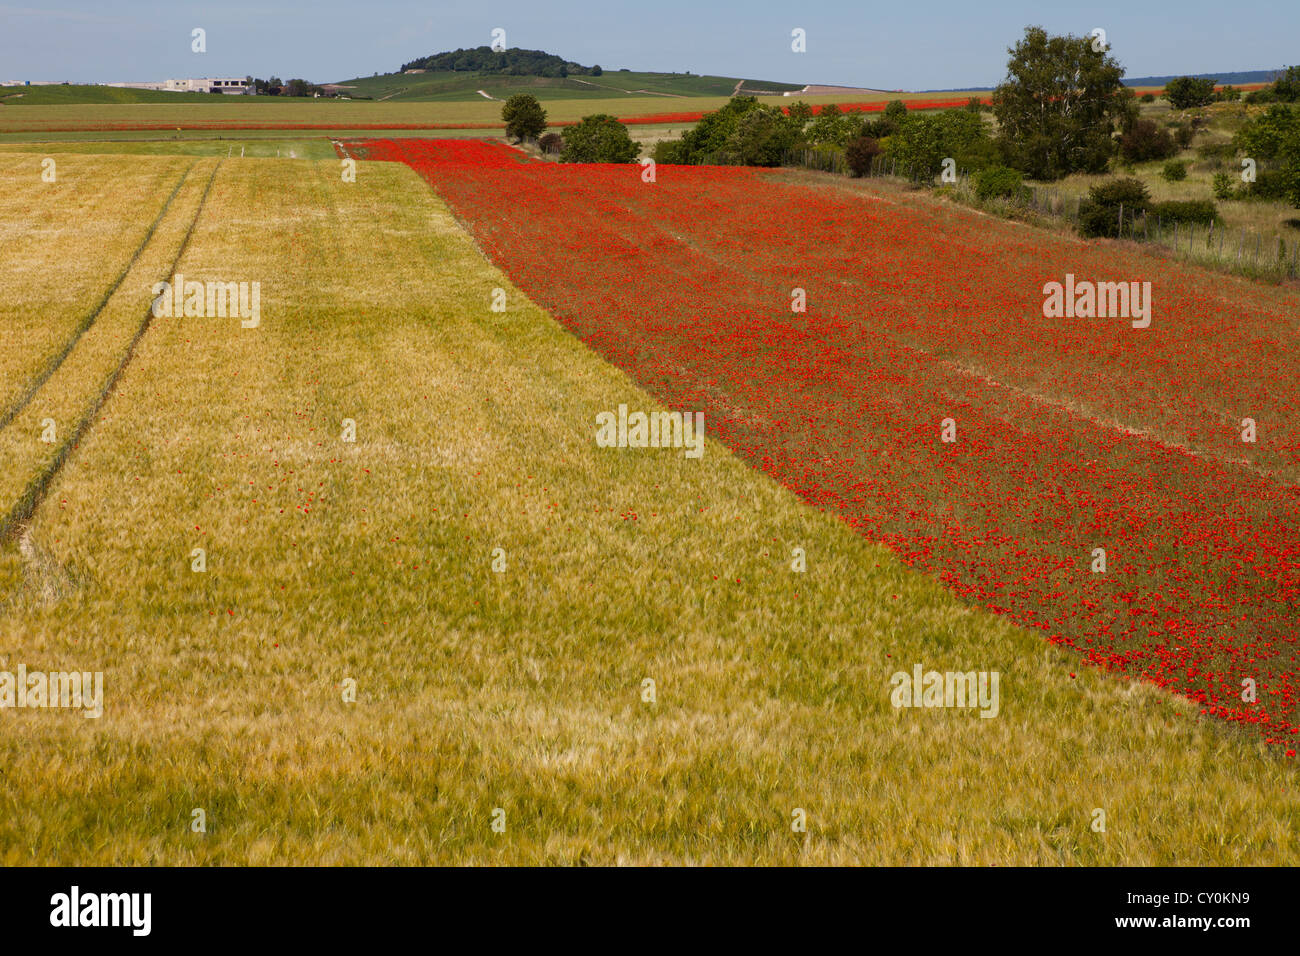 grain production in France - Stock Image